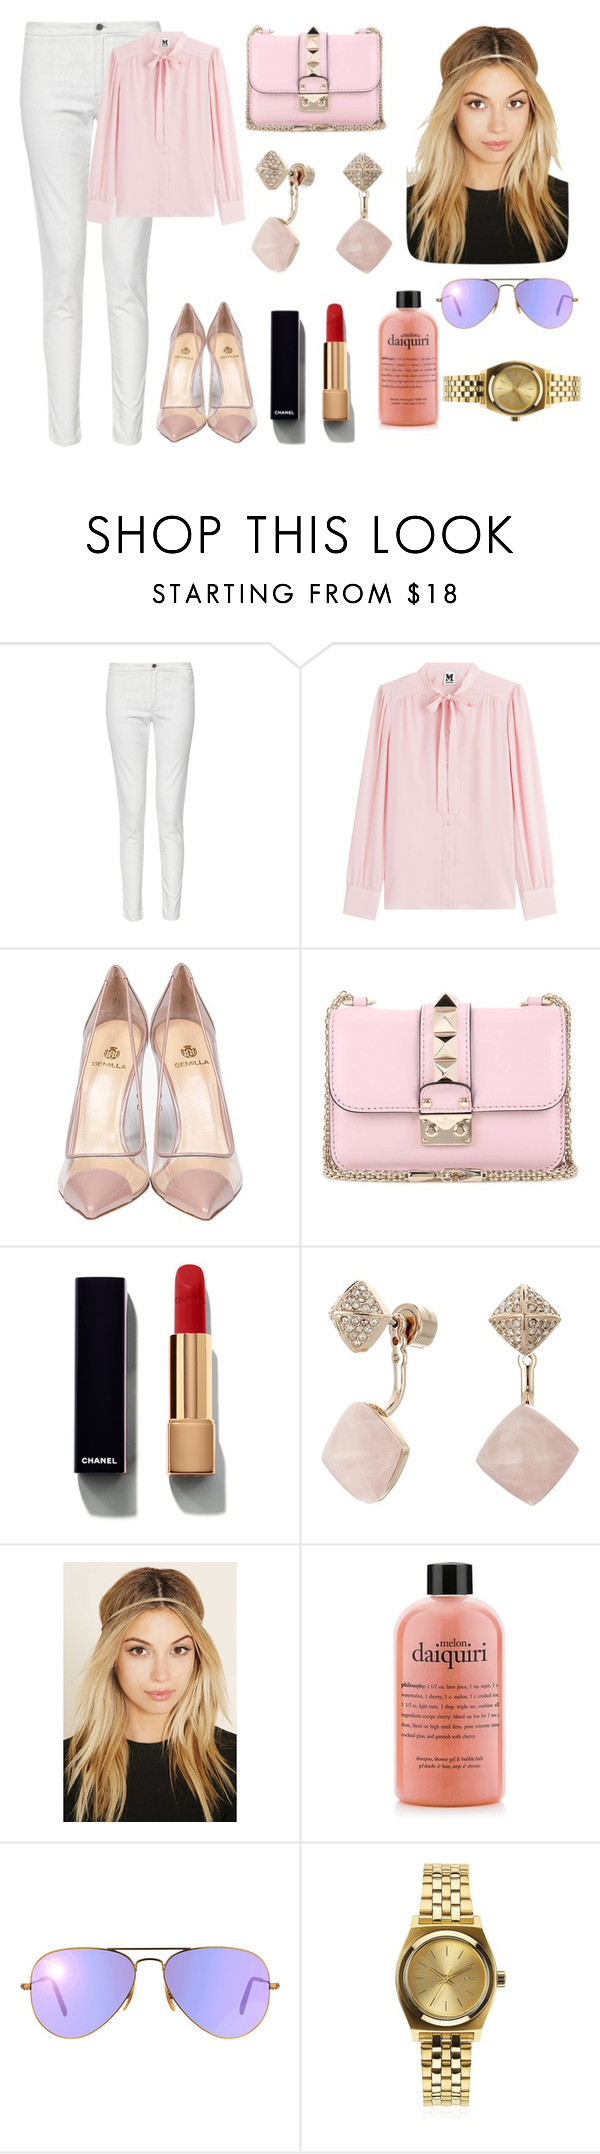 """Sin título #4071"" by alejandrahs ❤ liked on Polyvore featuring French Connection, M Missoni, Semilla, Valentino, Chanel, Michael Kors, Forever 21, Ray-Ban and Nixon"